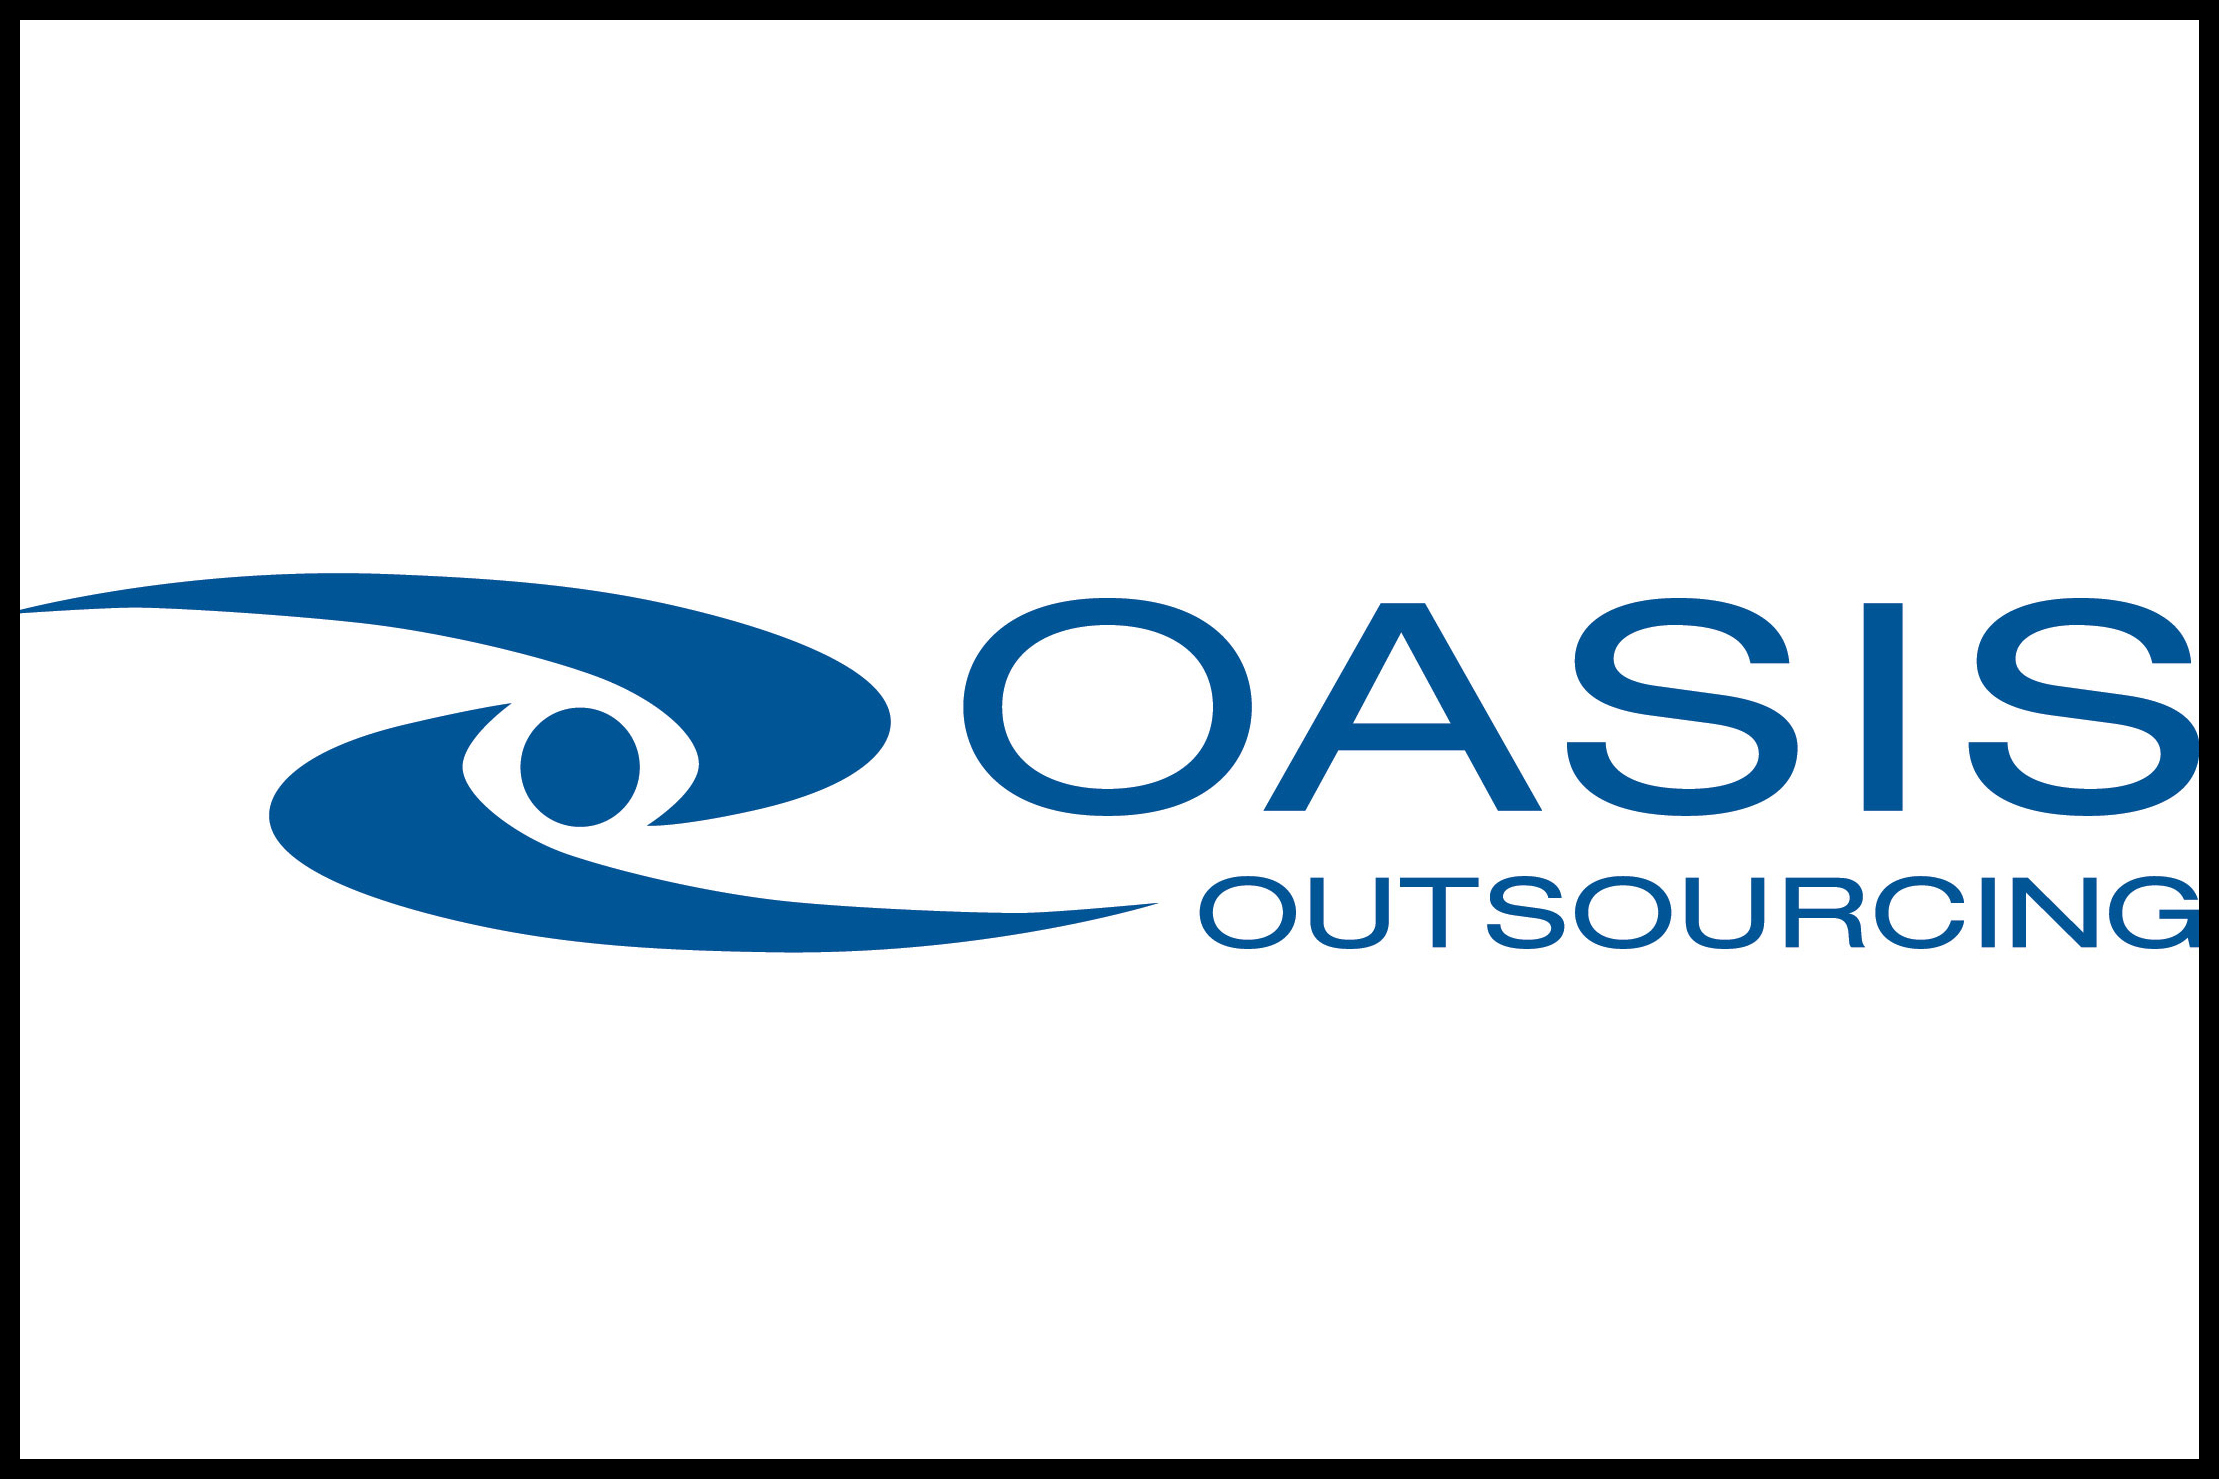 Oasis Outsourcing - AZ Charter MarketPlace Oasis Logo